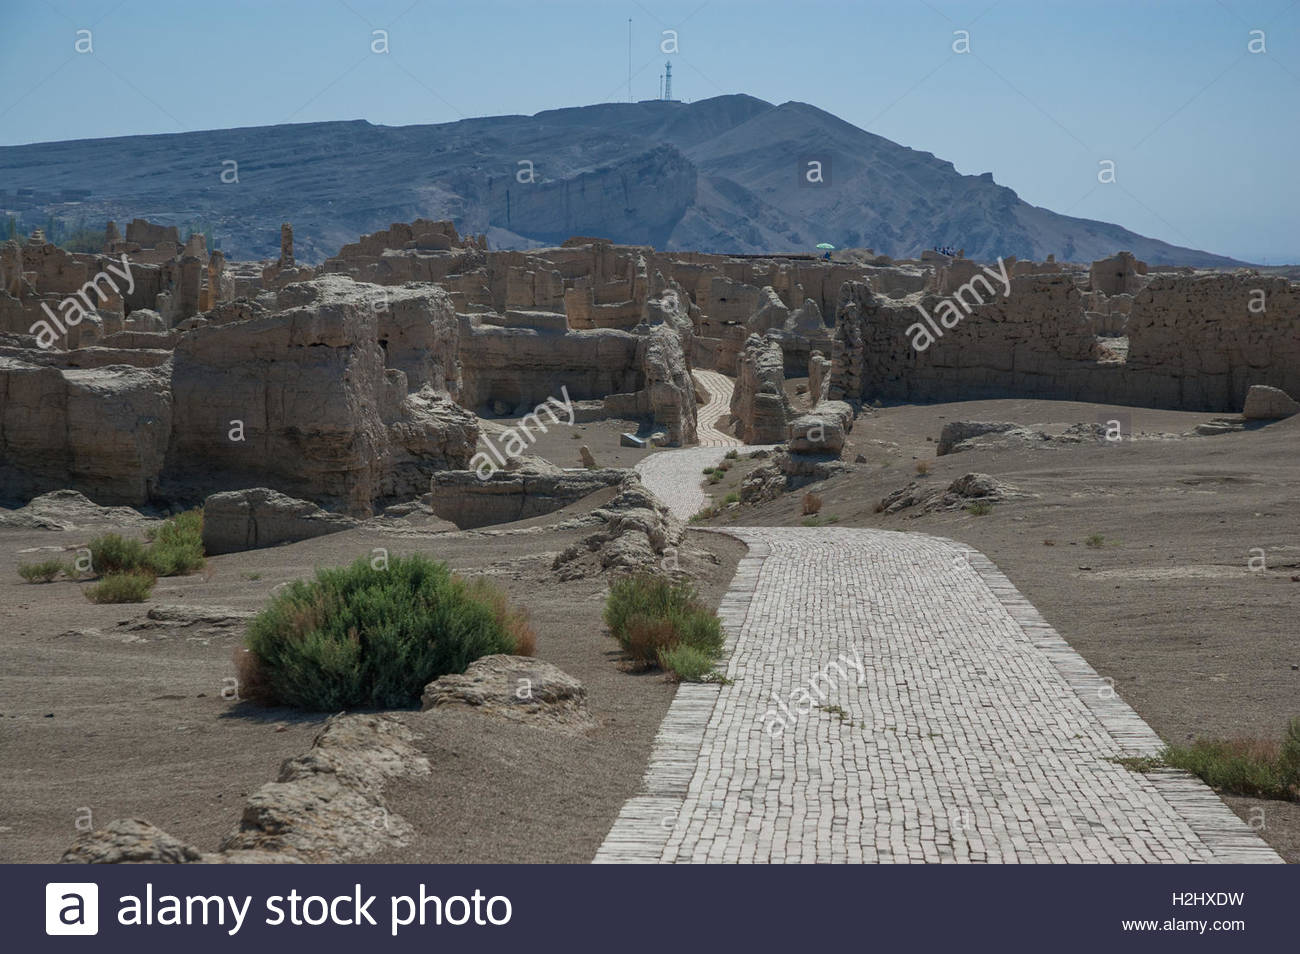 Ruins in the ancient city of Jiaohe a former Han garrison town near Turpan in the desert, Xinjiang Province, China - Stock Image